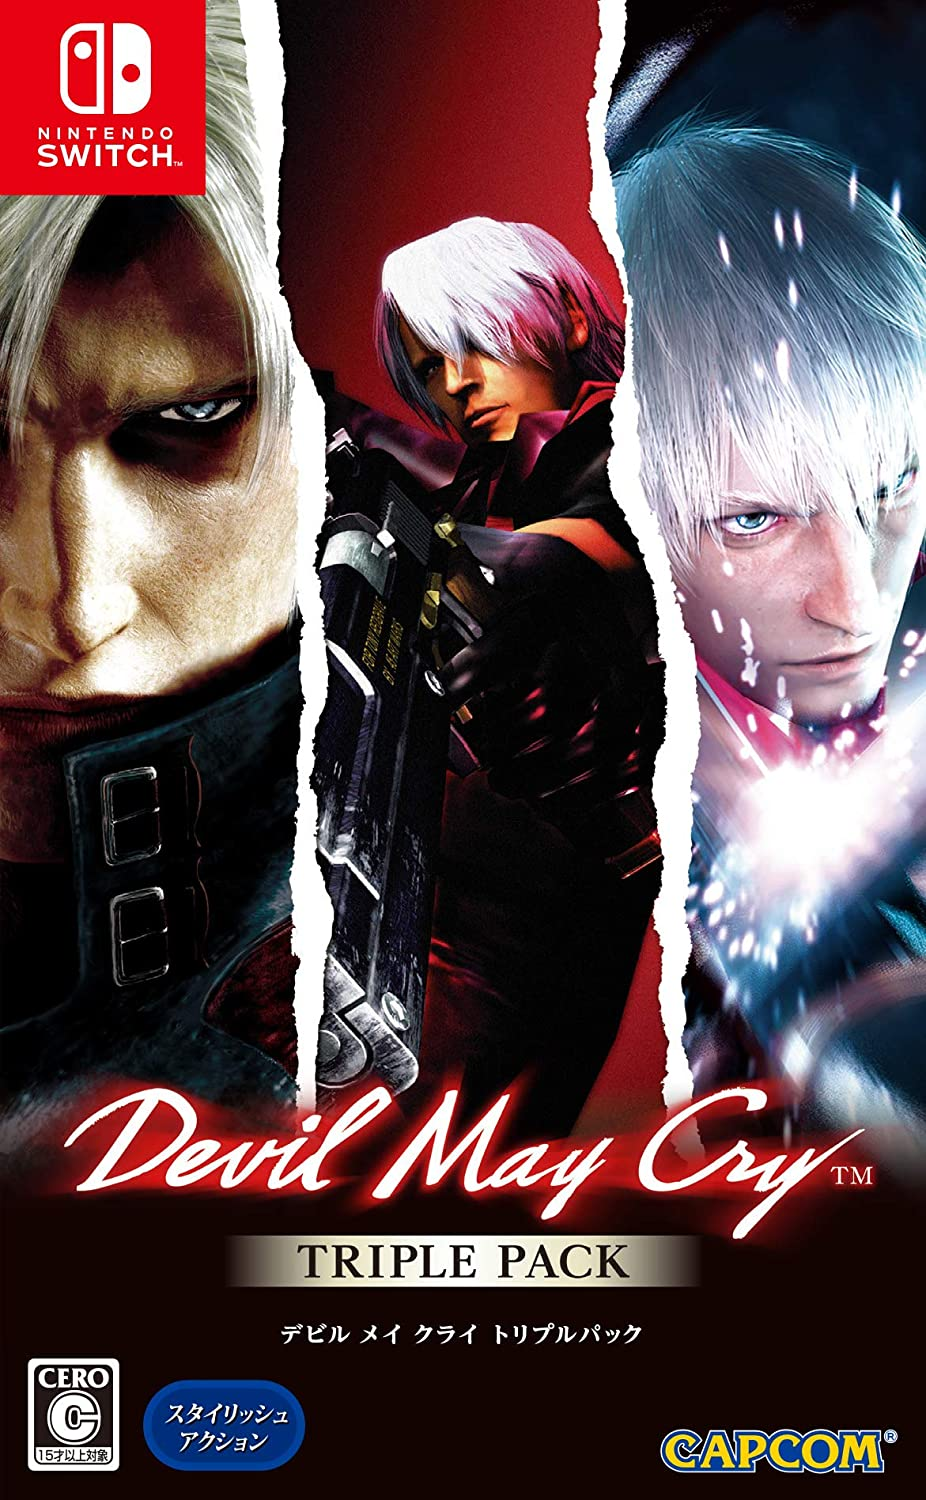 Amazon Com Devil May Cry Triple Pack Switch Amazon Co Jp限定